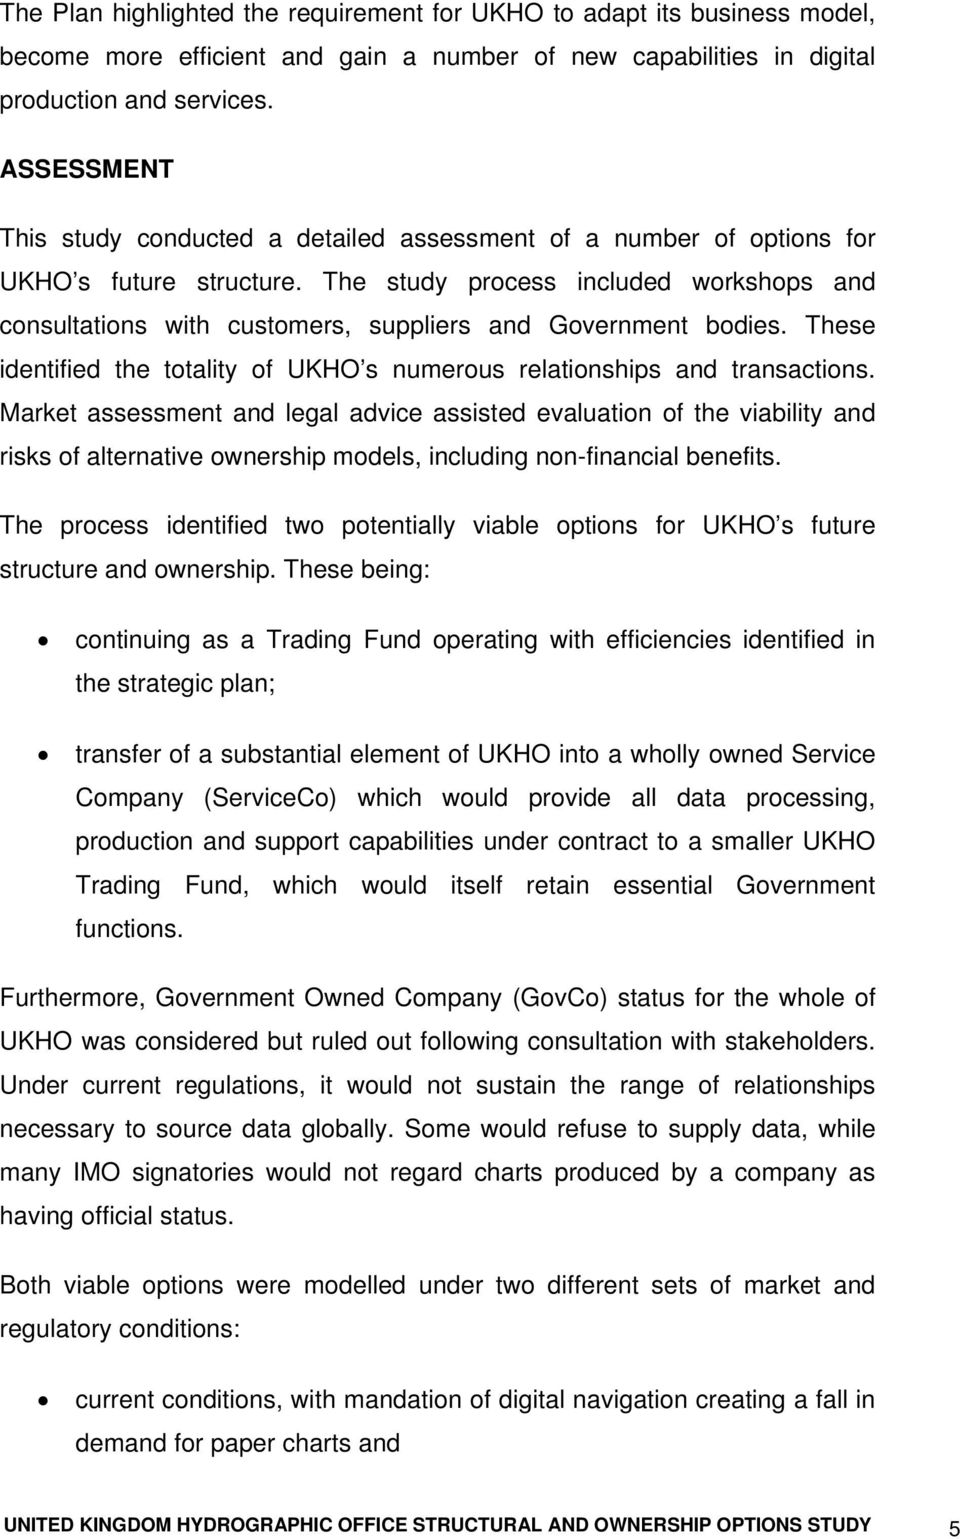 The study process included workshops and consultations with customers, suppliers and Government bodies. These identified the totality of UKHO s numerous relationships and transactions.